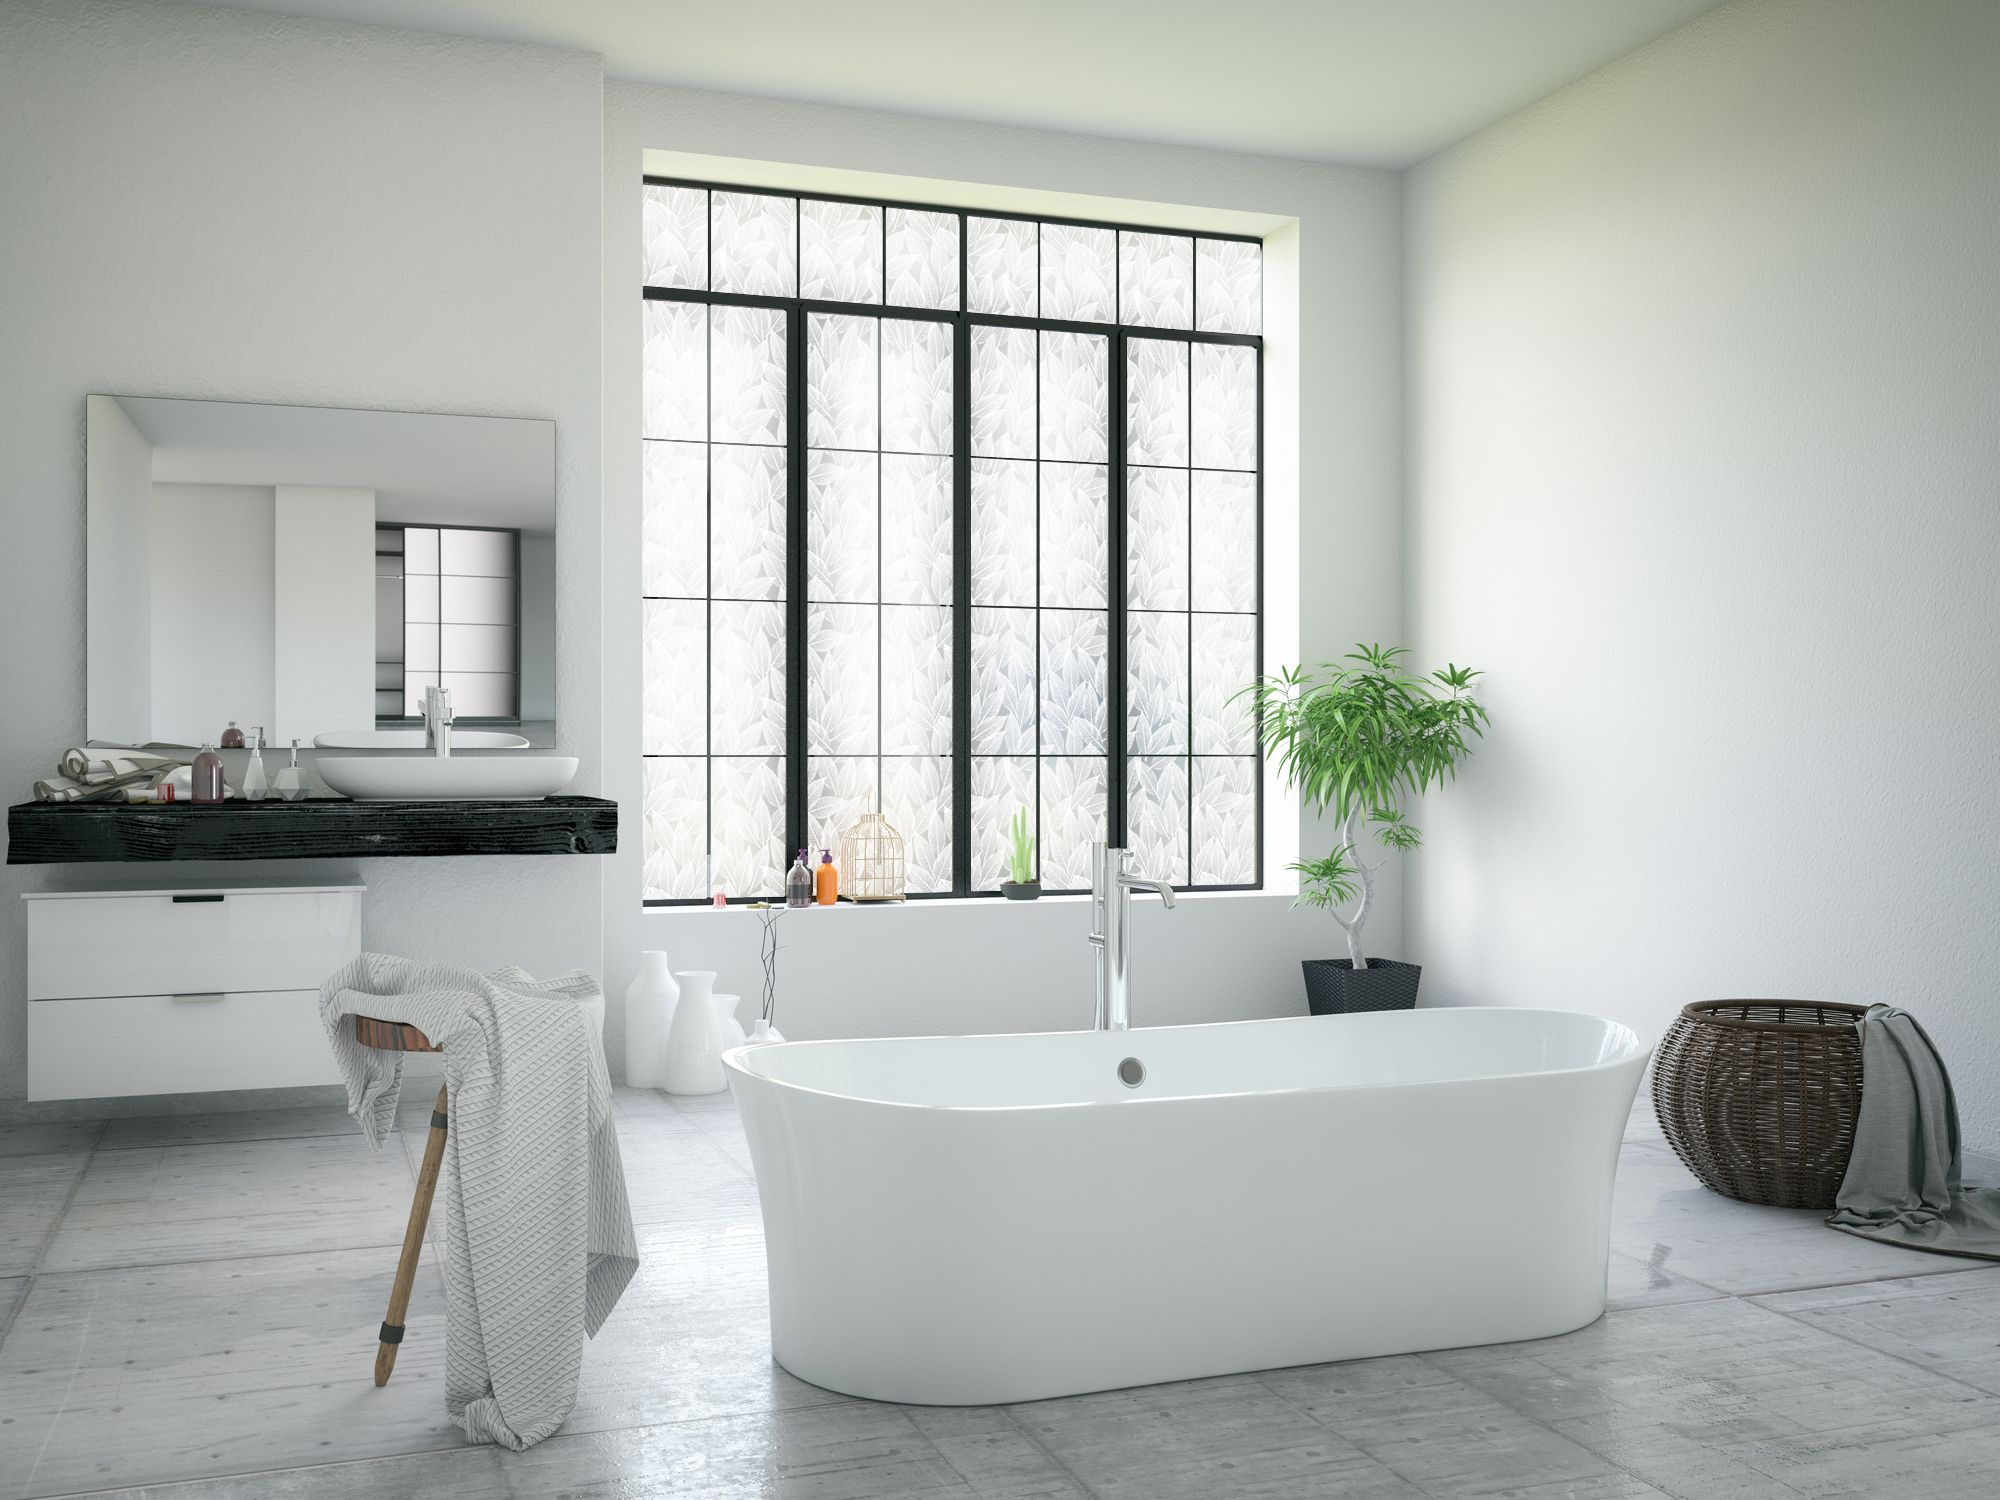 SX-3141 Dusted Leaf | Bathroom renovation cost, Bathroom ...